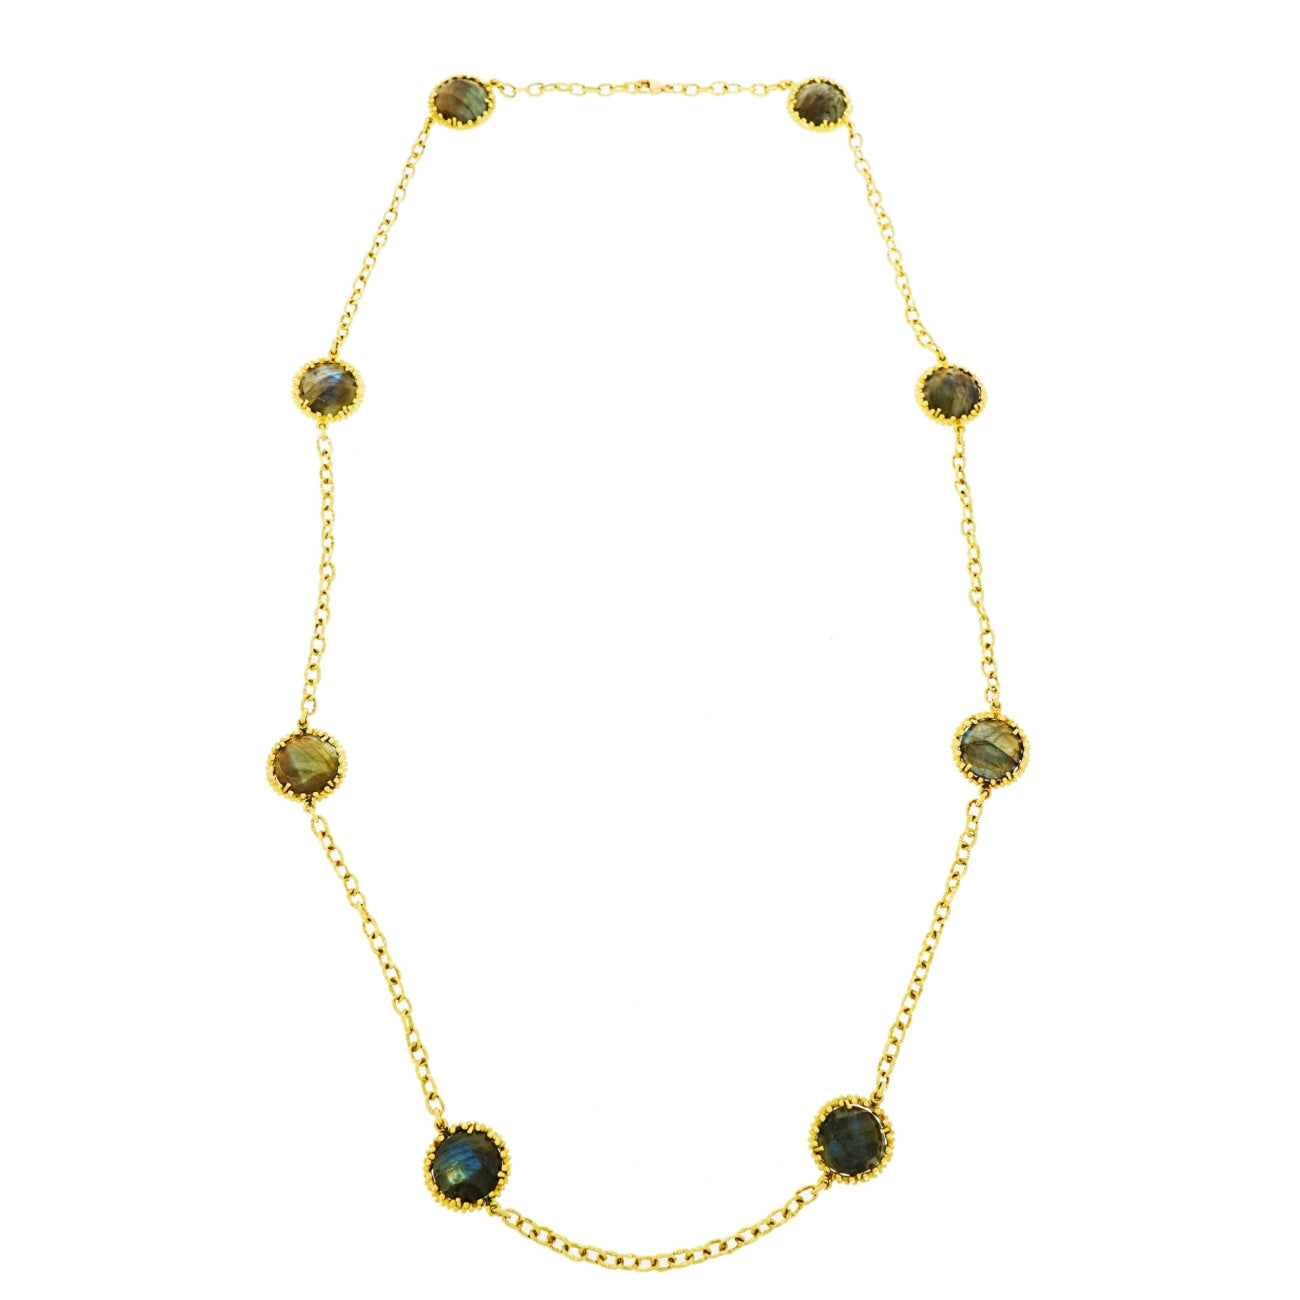 Lauren K Jewelry - Labradorite Yellow Gold Station Necklace | Manfredi Jewels